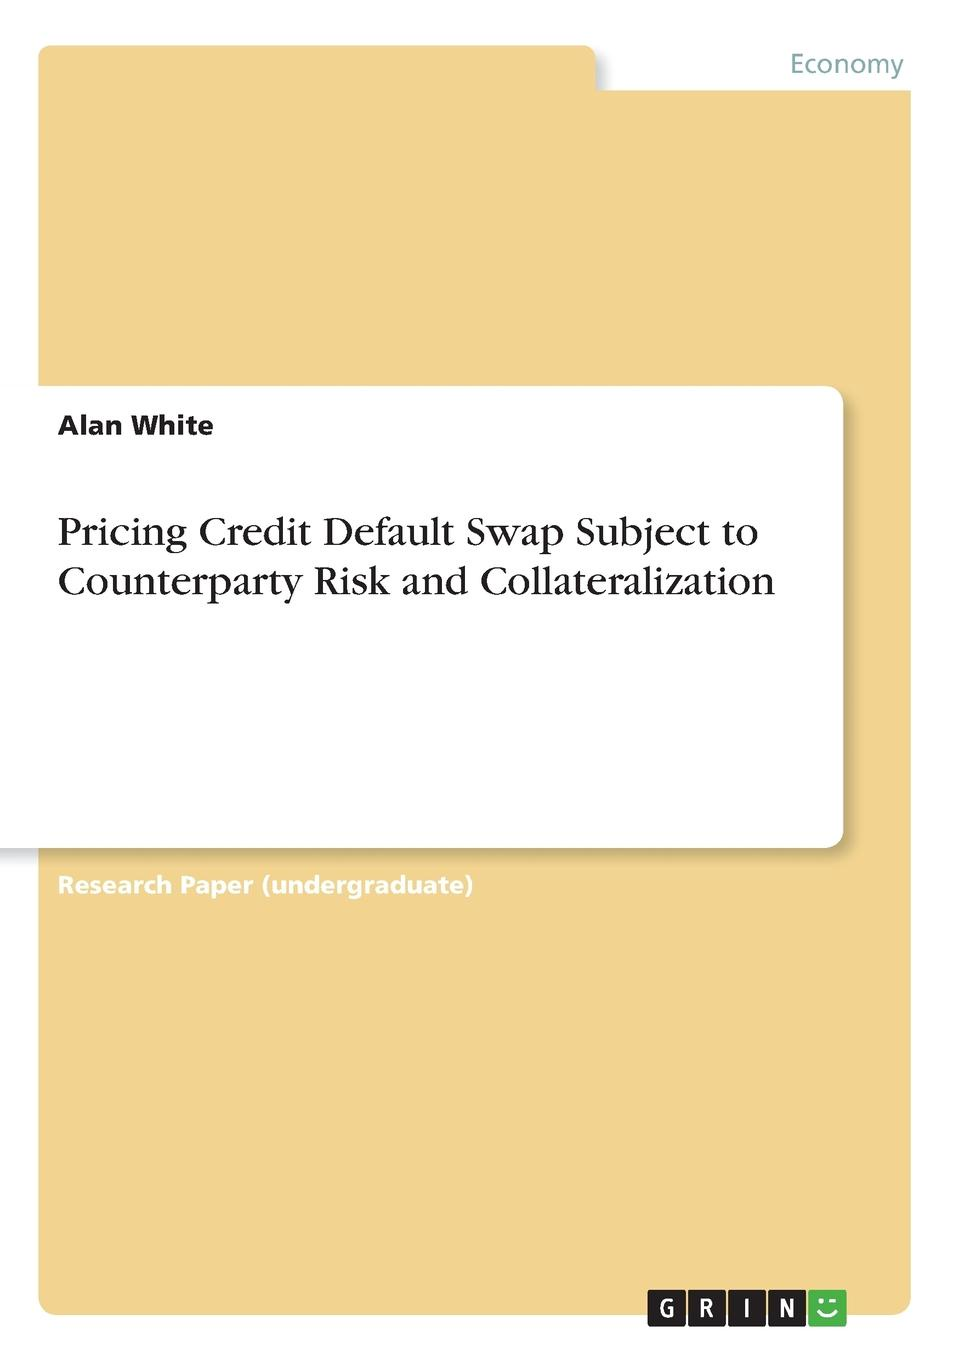 Alan White Pricing Credit Default Swap Subject to Counterparty Risk and Collateralization charles tapiero s risk finance and asset pricing value measurements and markets